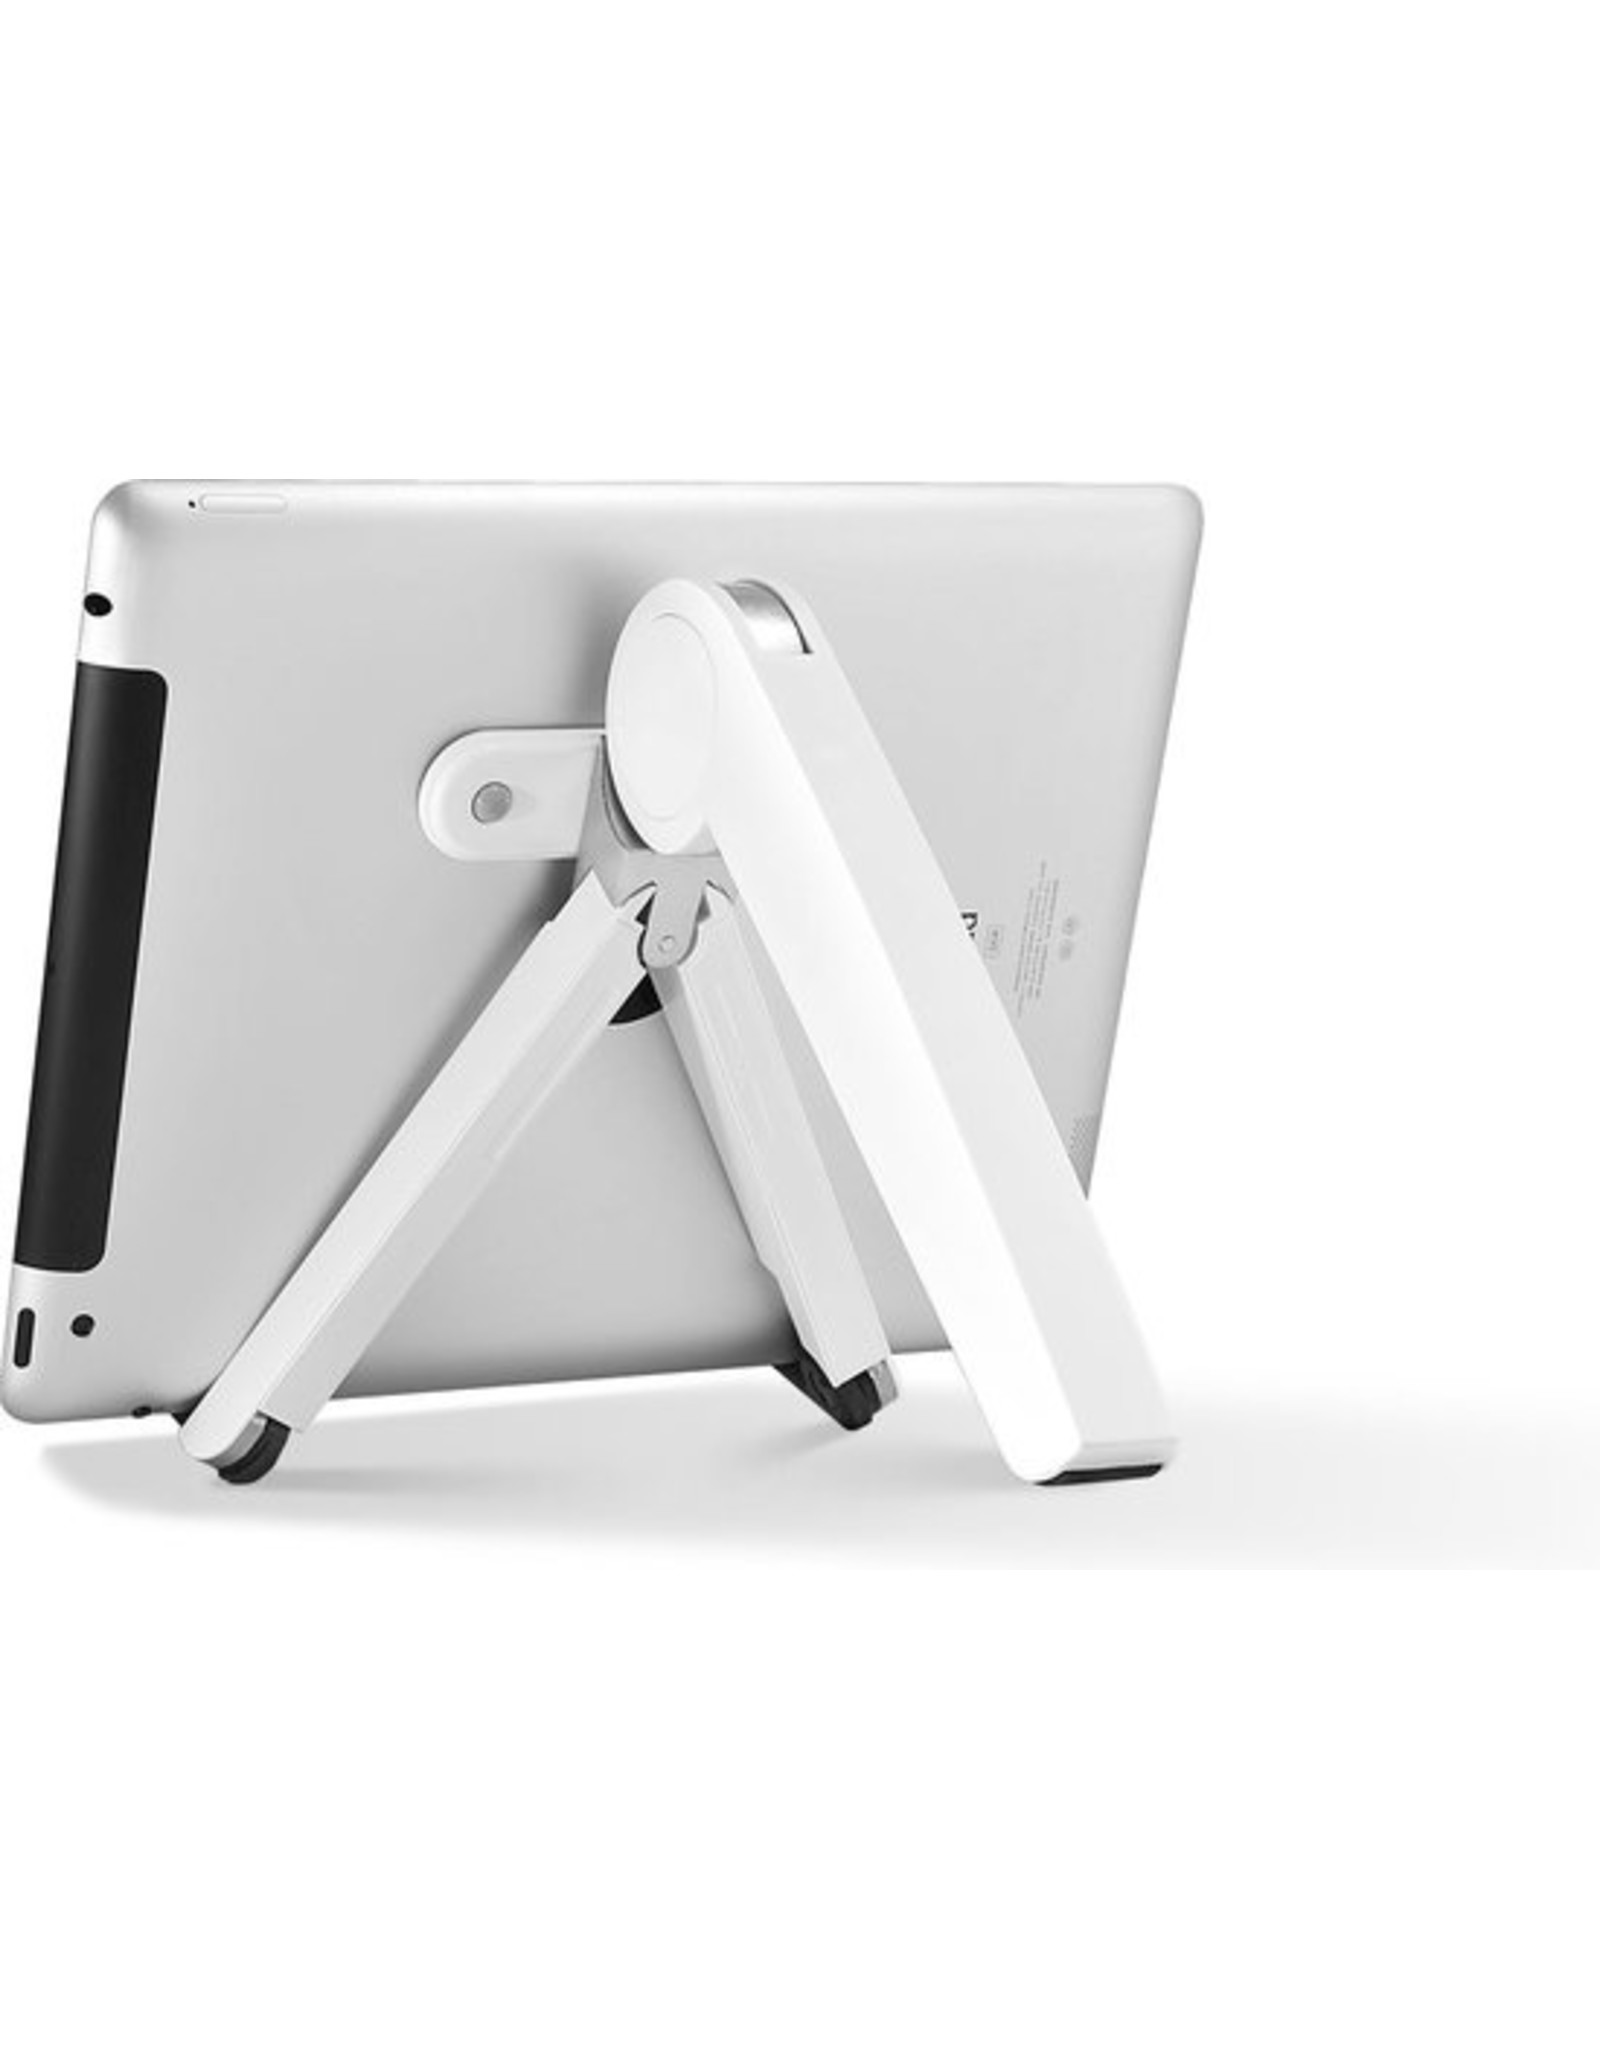 Merkloos Multifunctional stand for Laptop, Tablet & Phone